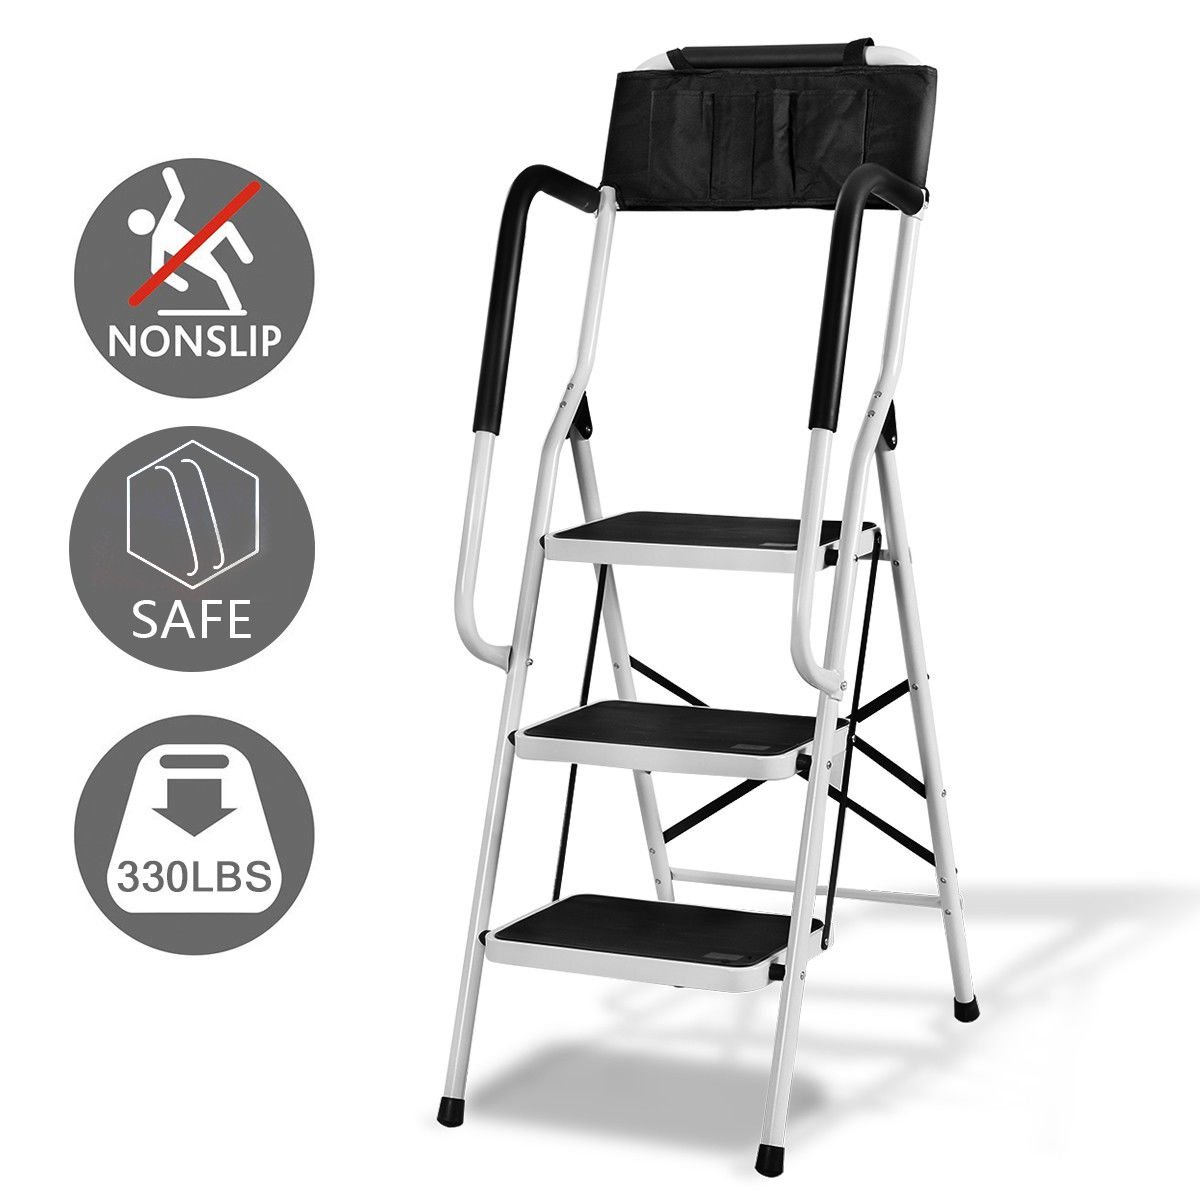 Giantex Folding 3 Step Ladder W/Padded Side Handrails Non-Slip Steps Tool Pouch Caddy Lightweight Powerful Capacity by Giantex (Image #6)